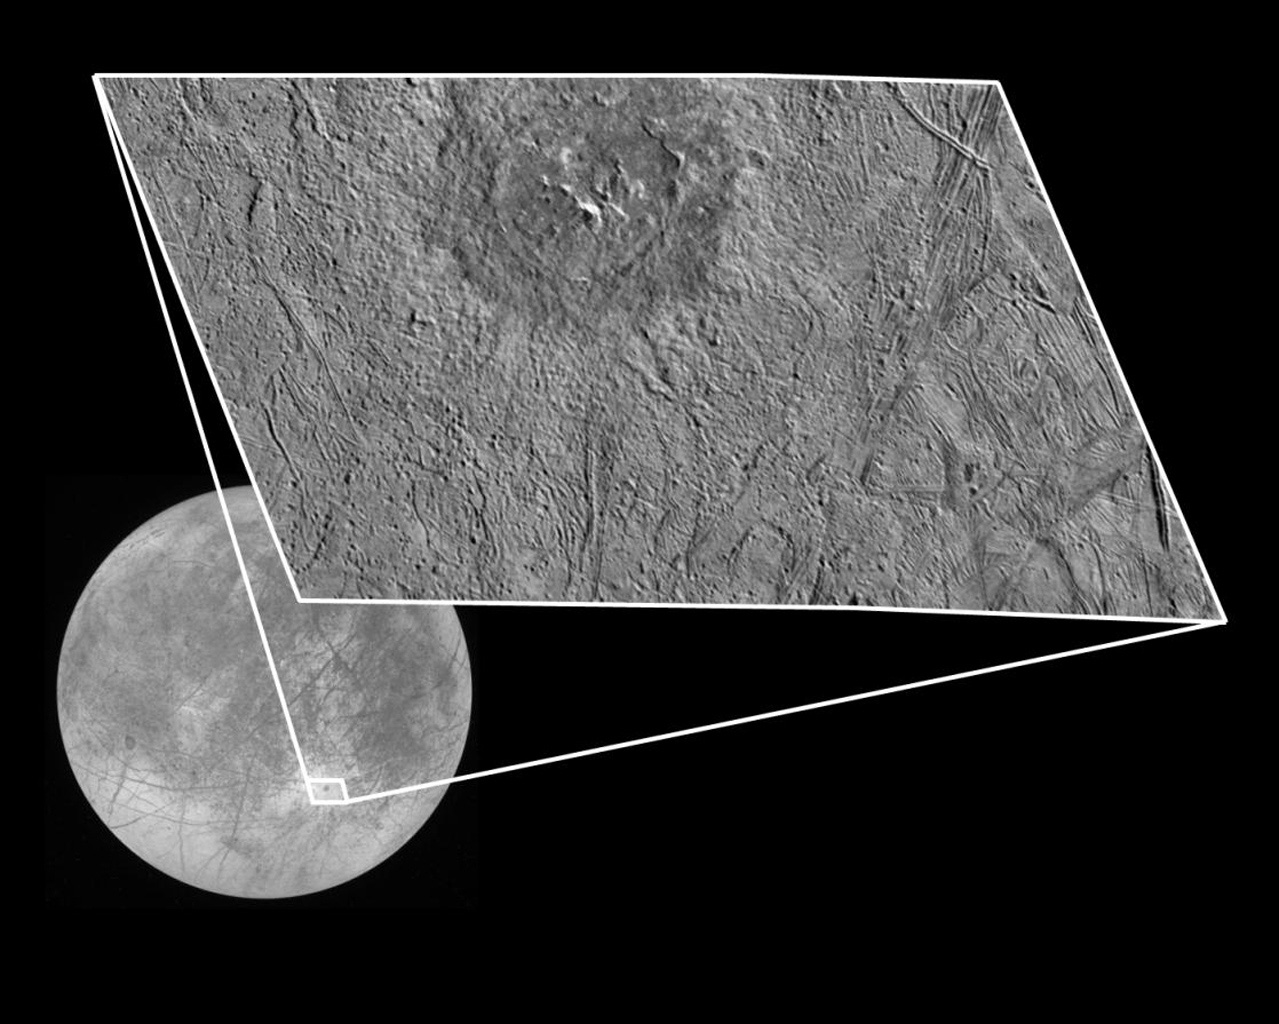 This view of the Pwyll impact crater on Jupiter's moon Europa taken by NASA's Galileo spacecraft shows the interior structure and surrounding ejecta deposits. Pwyll's location is shown in the background global view.